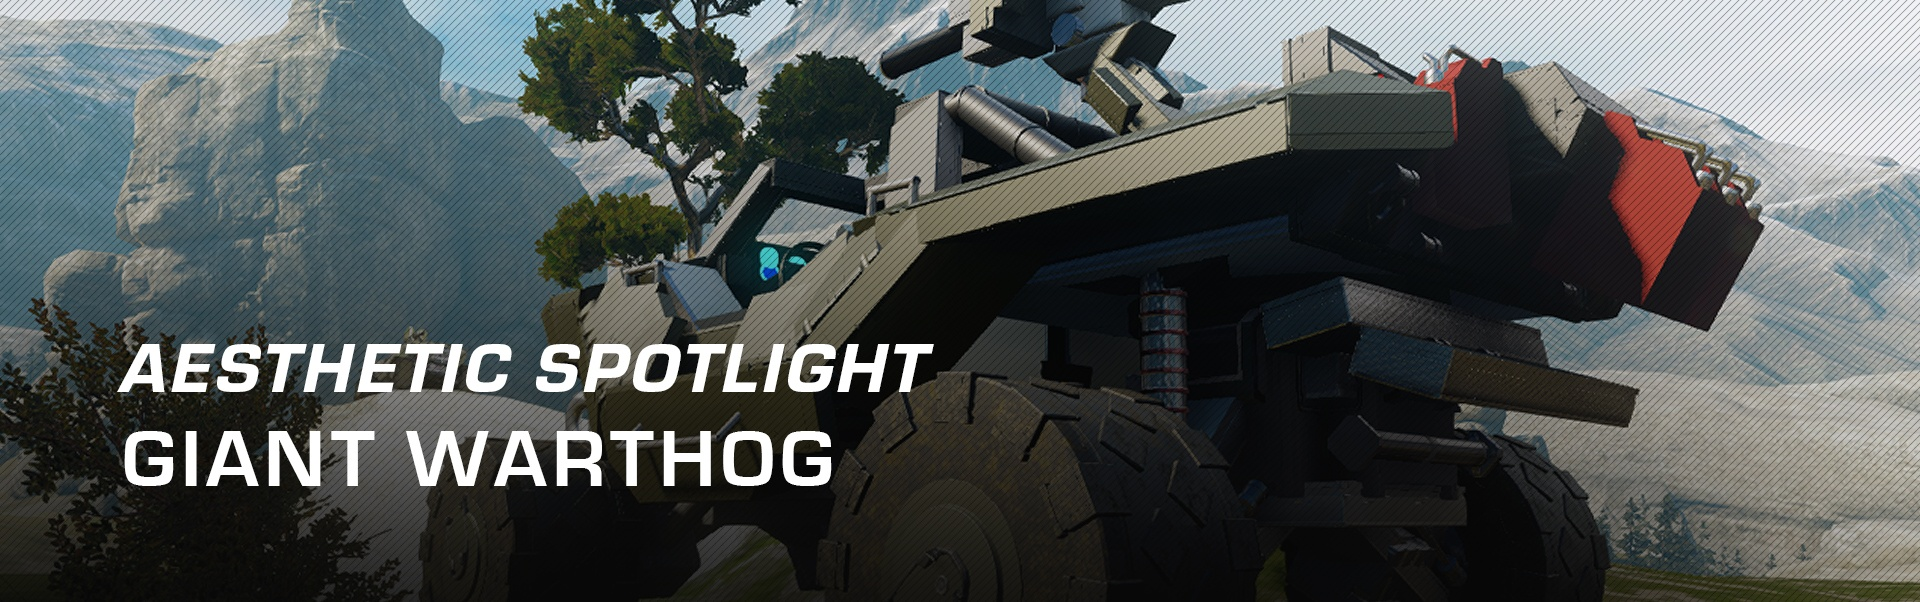 Aesthetic_spotlight_-_giant_warthog.jpg